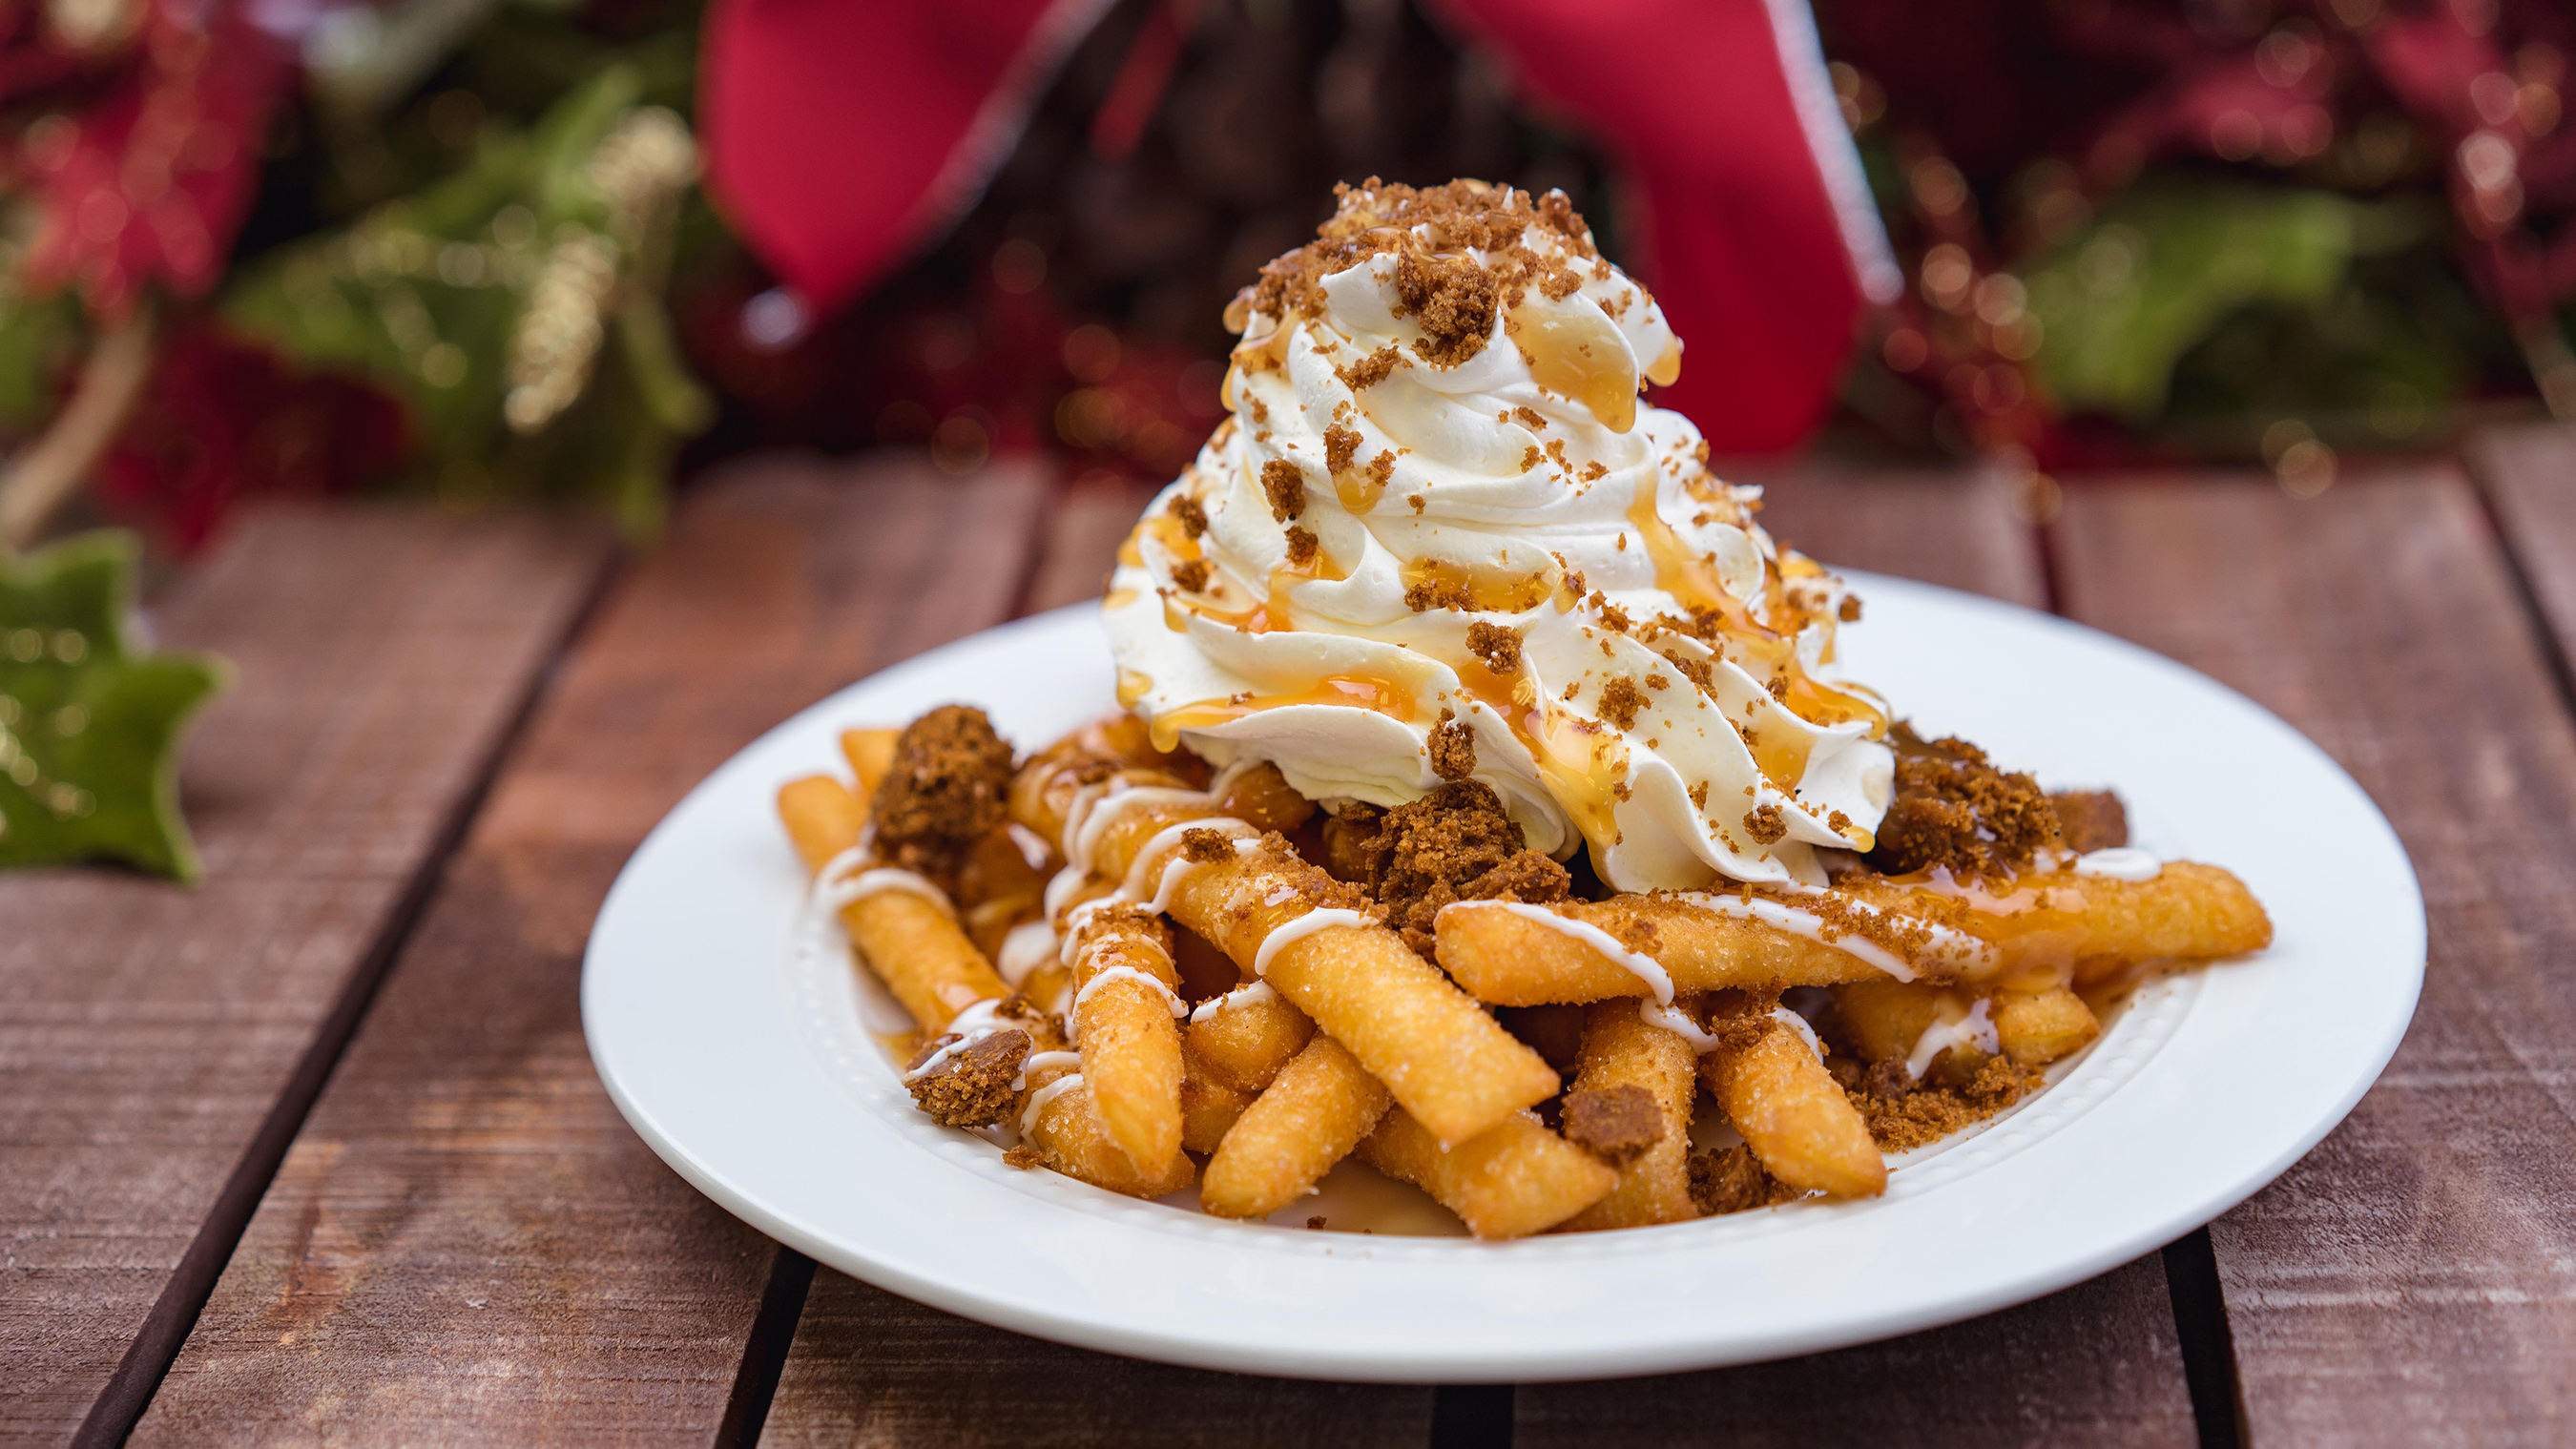 Gingerbread Funnel Cake Fries can be found for a limited time at Award Wieners in Hollywood Land at Disney California Adventure park during Holidays at the Disneyland Resort. It's just one of many specialty food items available throughout the resort during the 2018-2019 holiday season. Disneyland Resort is located in Anaheim, Calif. (Disneyland Resort)